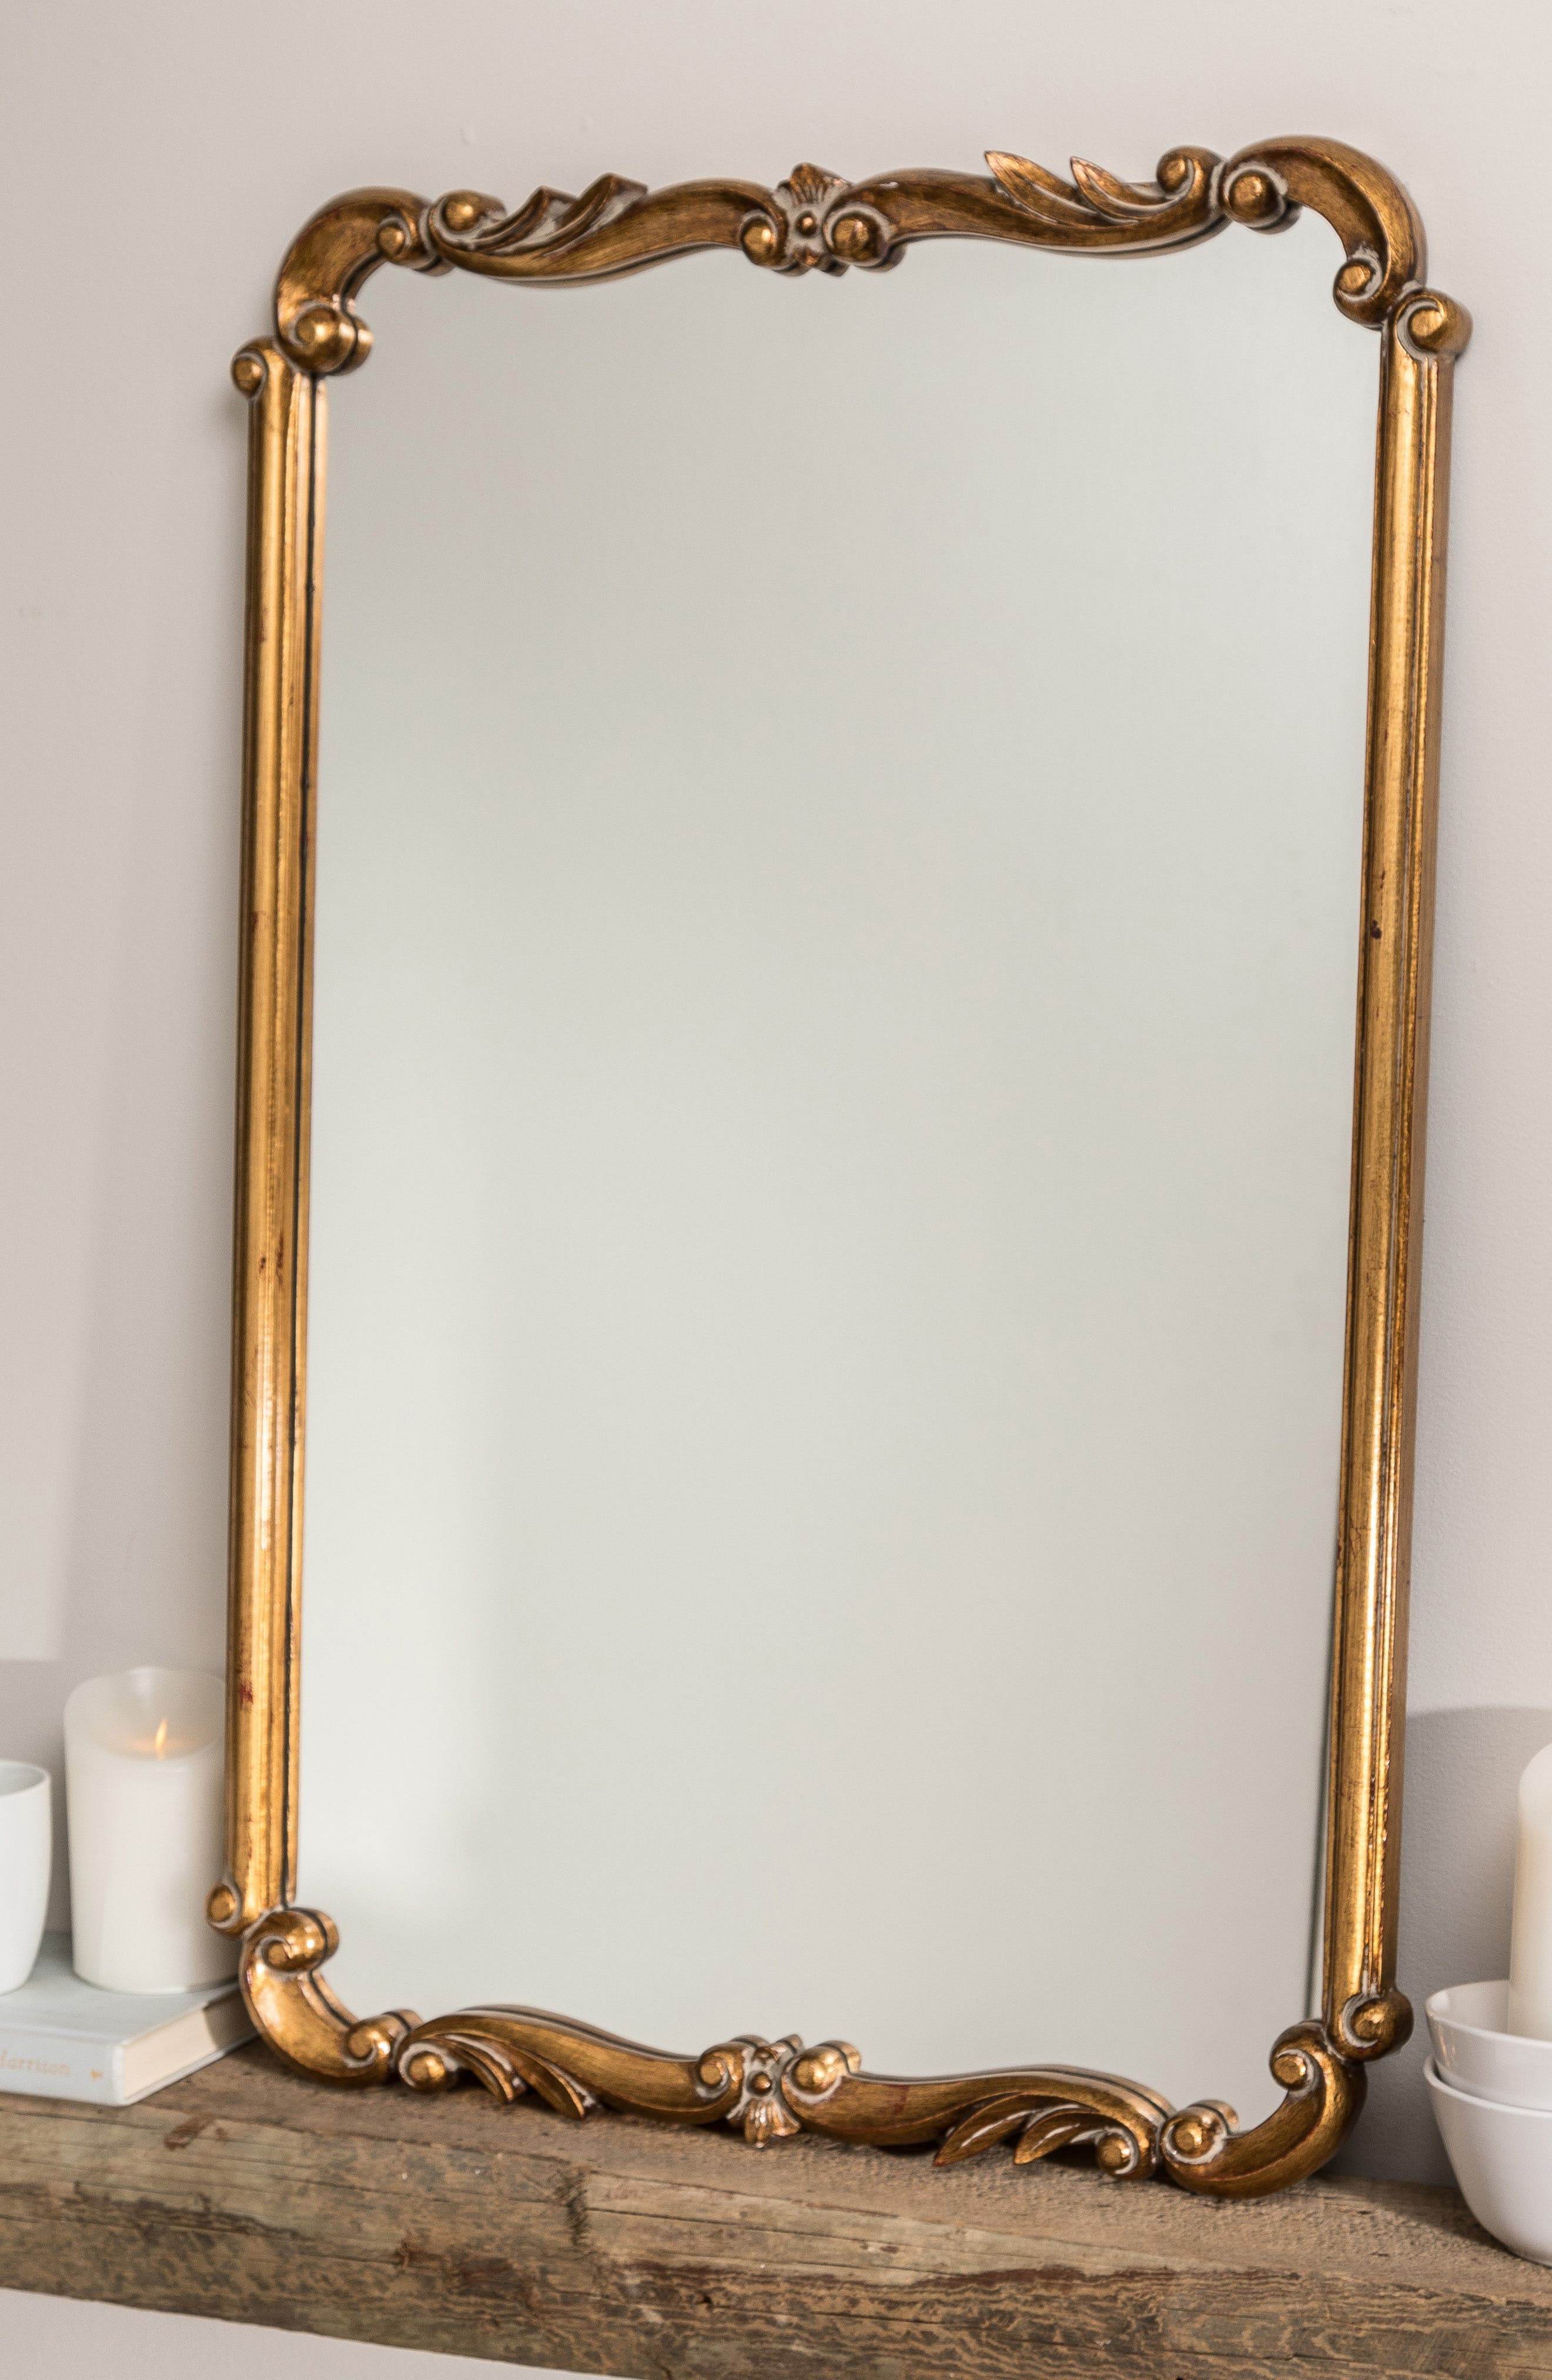 GEORGE AND CO, Antiqued Wall Mirror, Alternate thumbnail 3, color, METALLIC GOLD